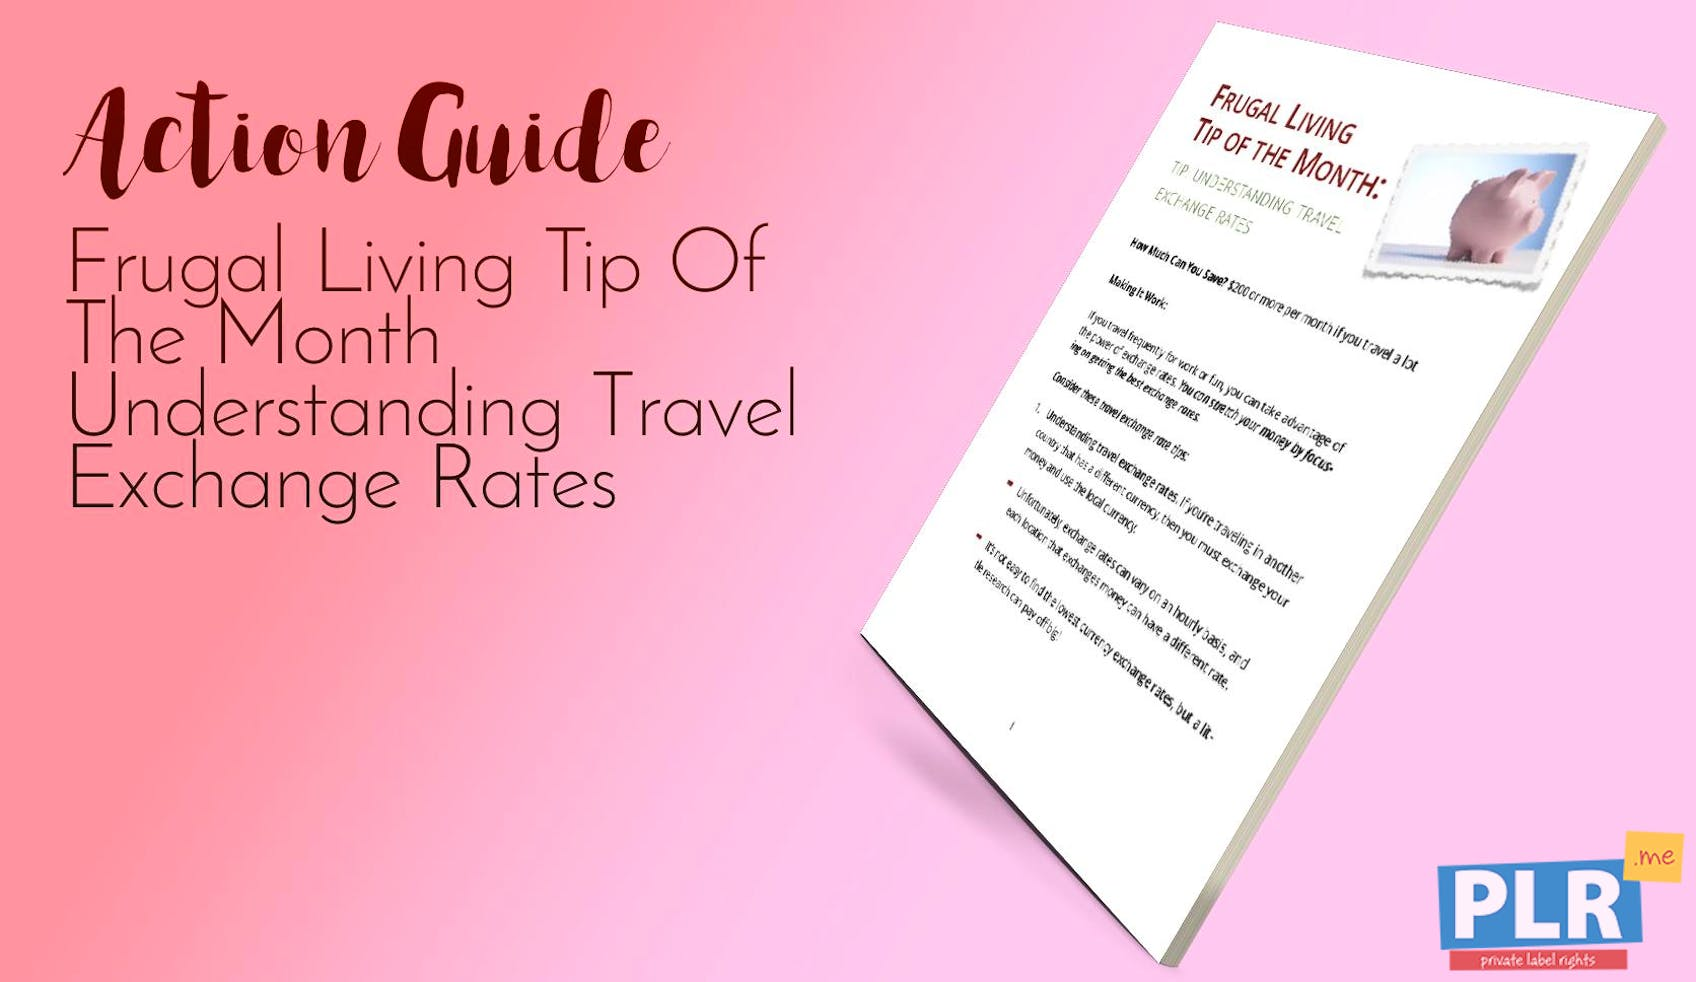 Frugal Living Tip Of The Month Understanding Travel Exchange Rates